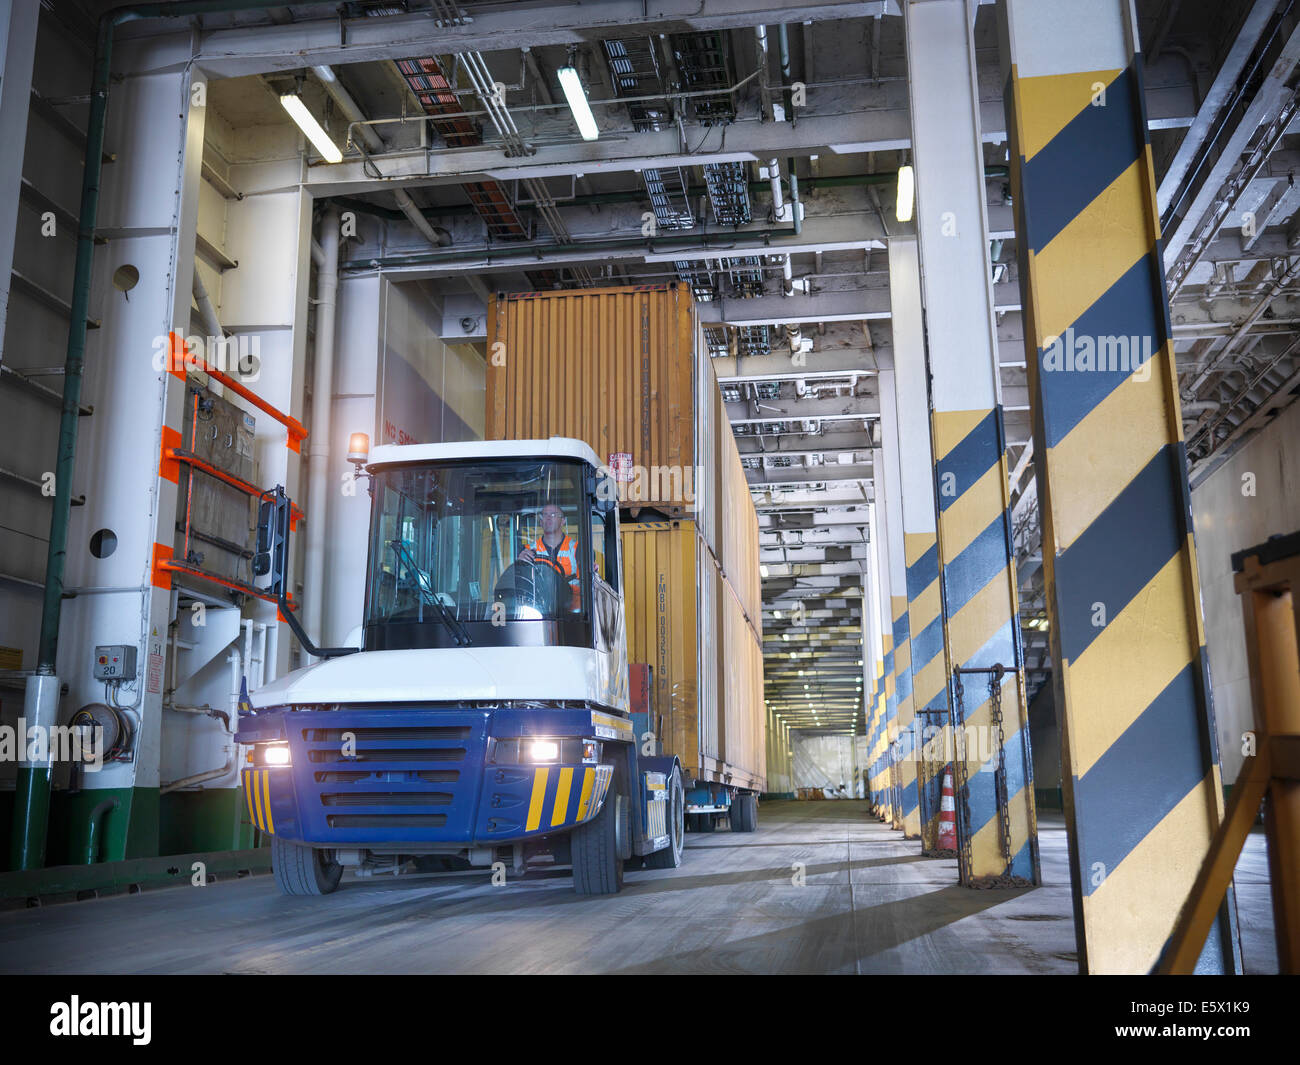 Shipping container loaded into ferry hold - Stock Image